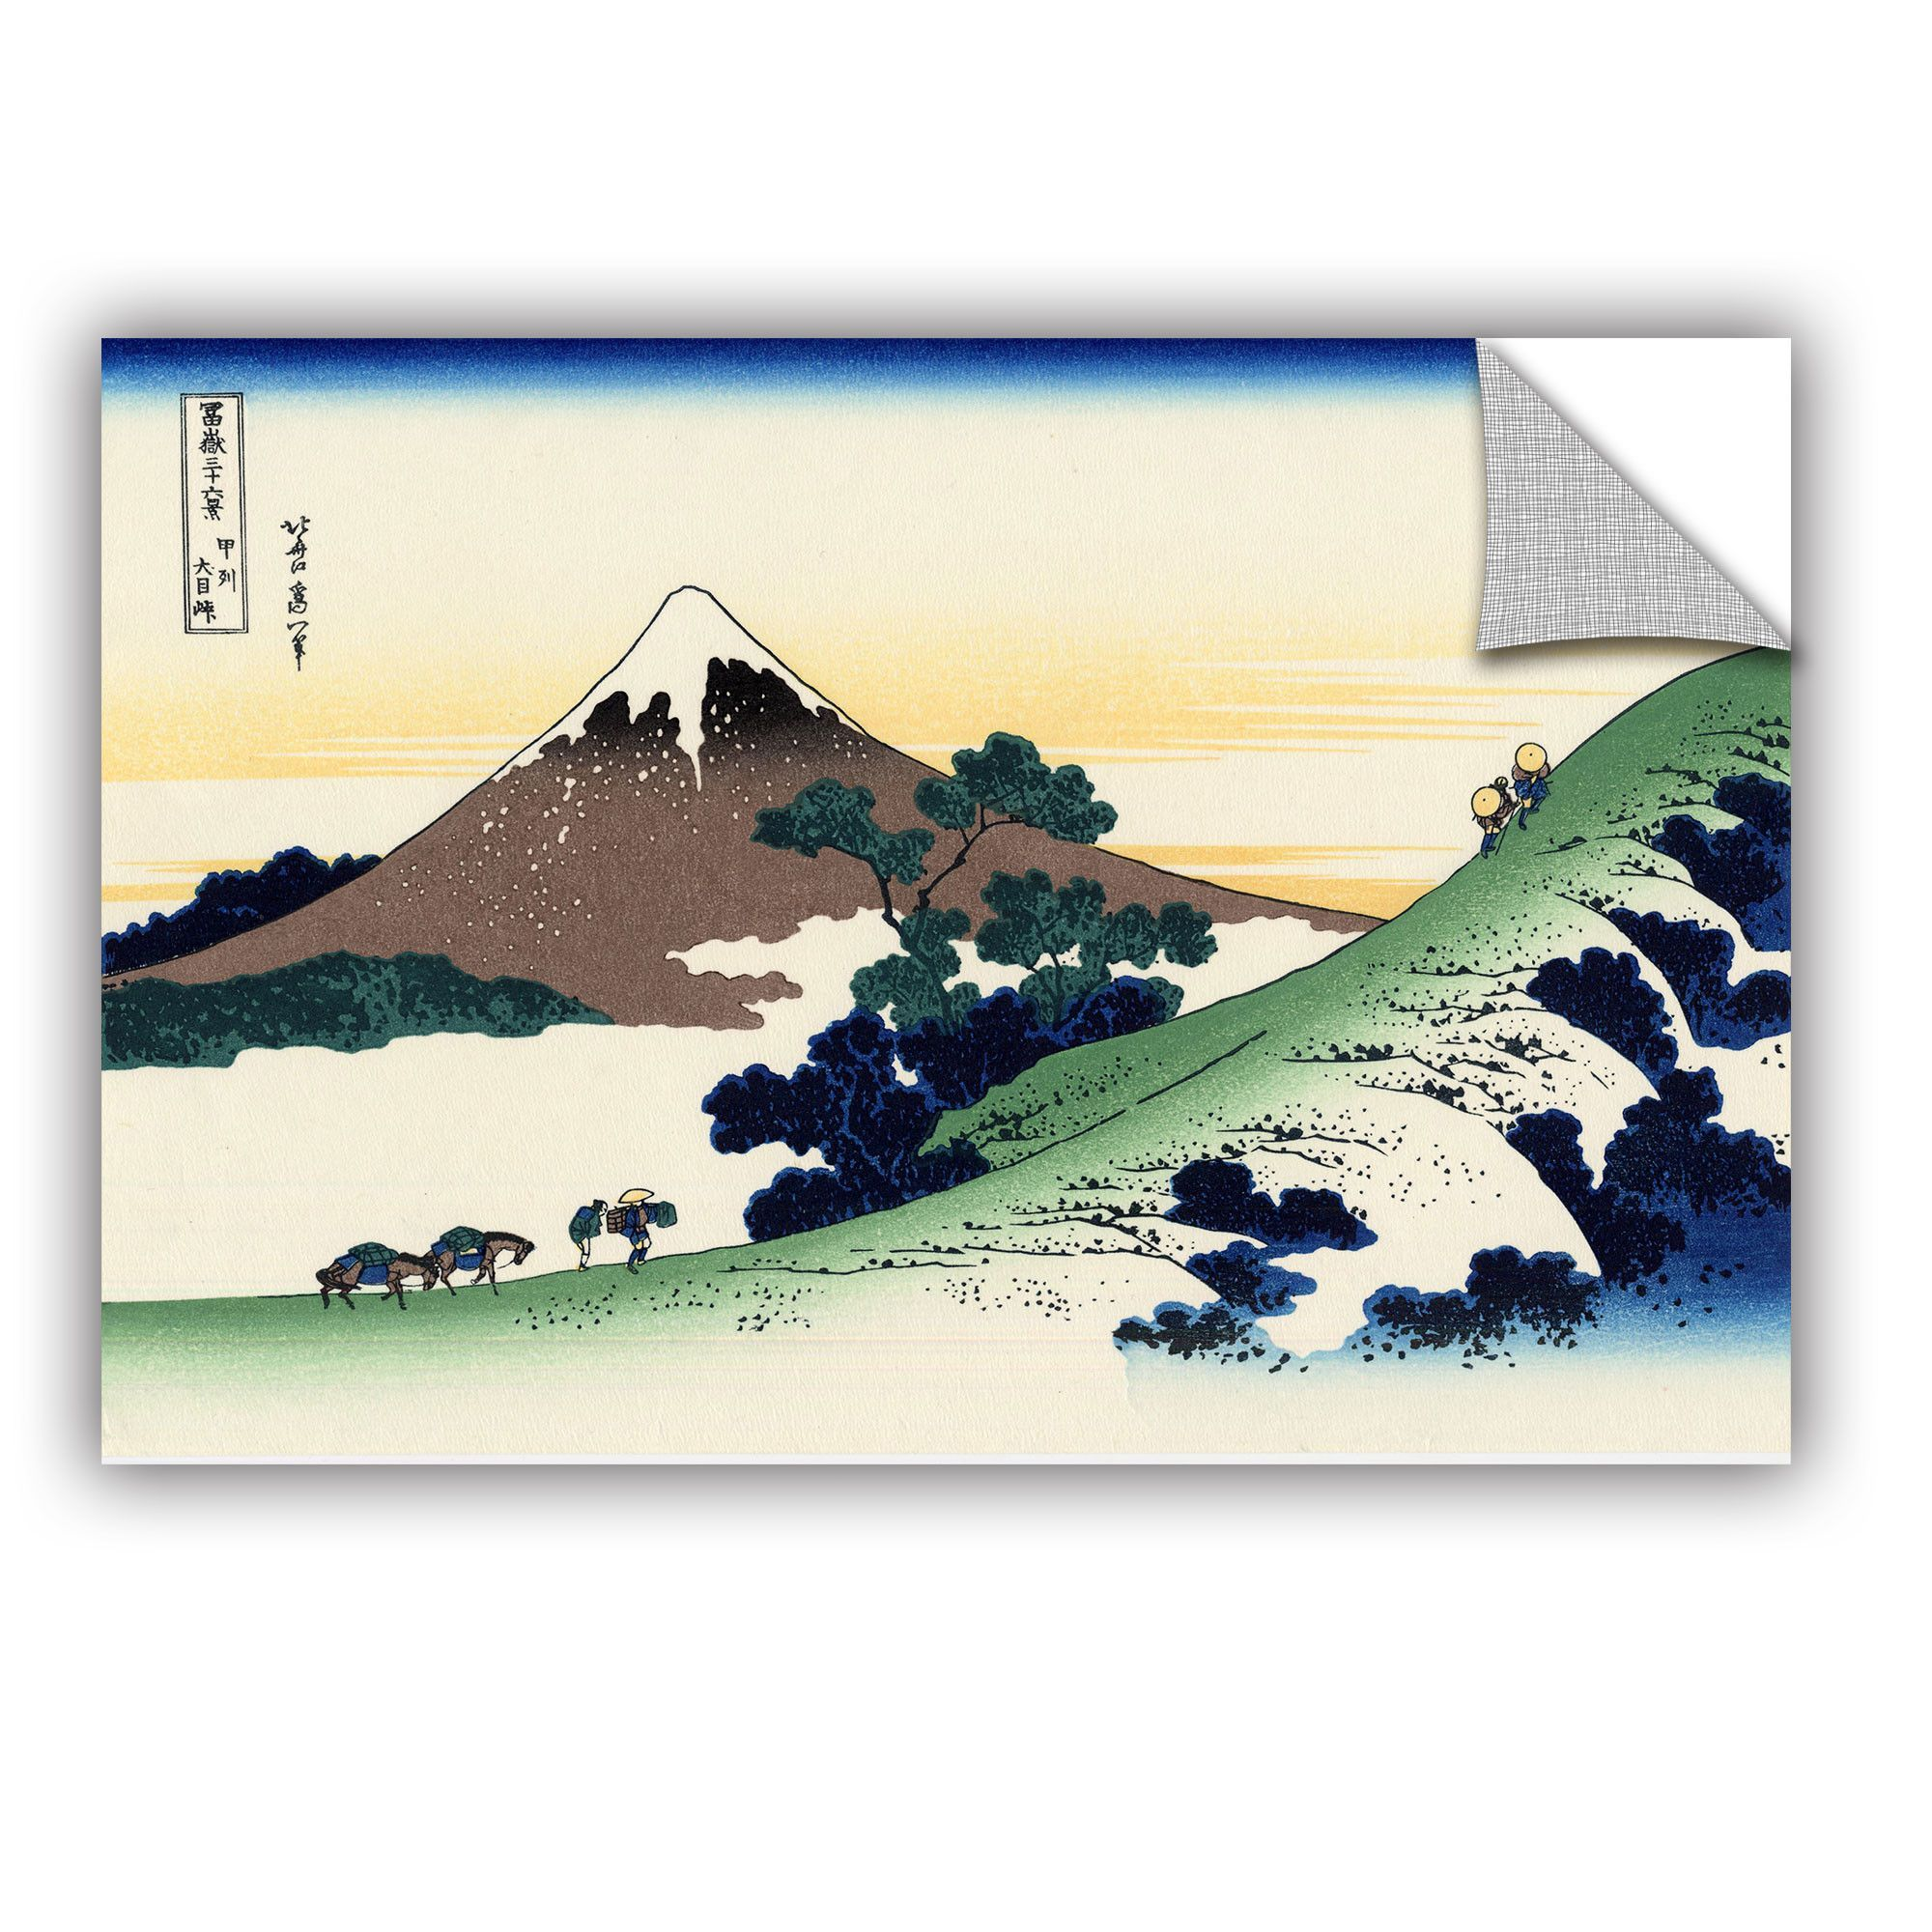 Mt Fuji In The Sunset By Katsushika Hokusai Removable Wall Decal Hokusai Paintings Katsushika Hokusai Hokusai